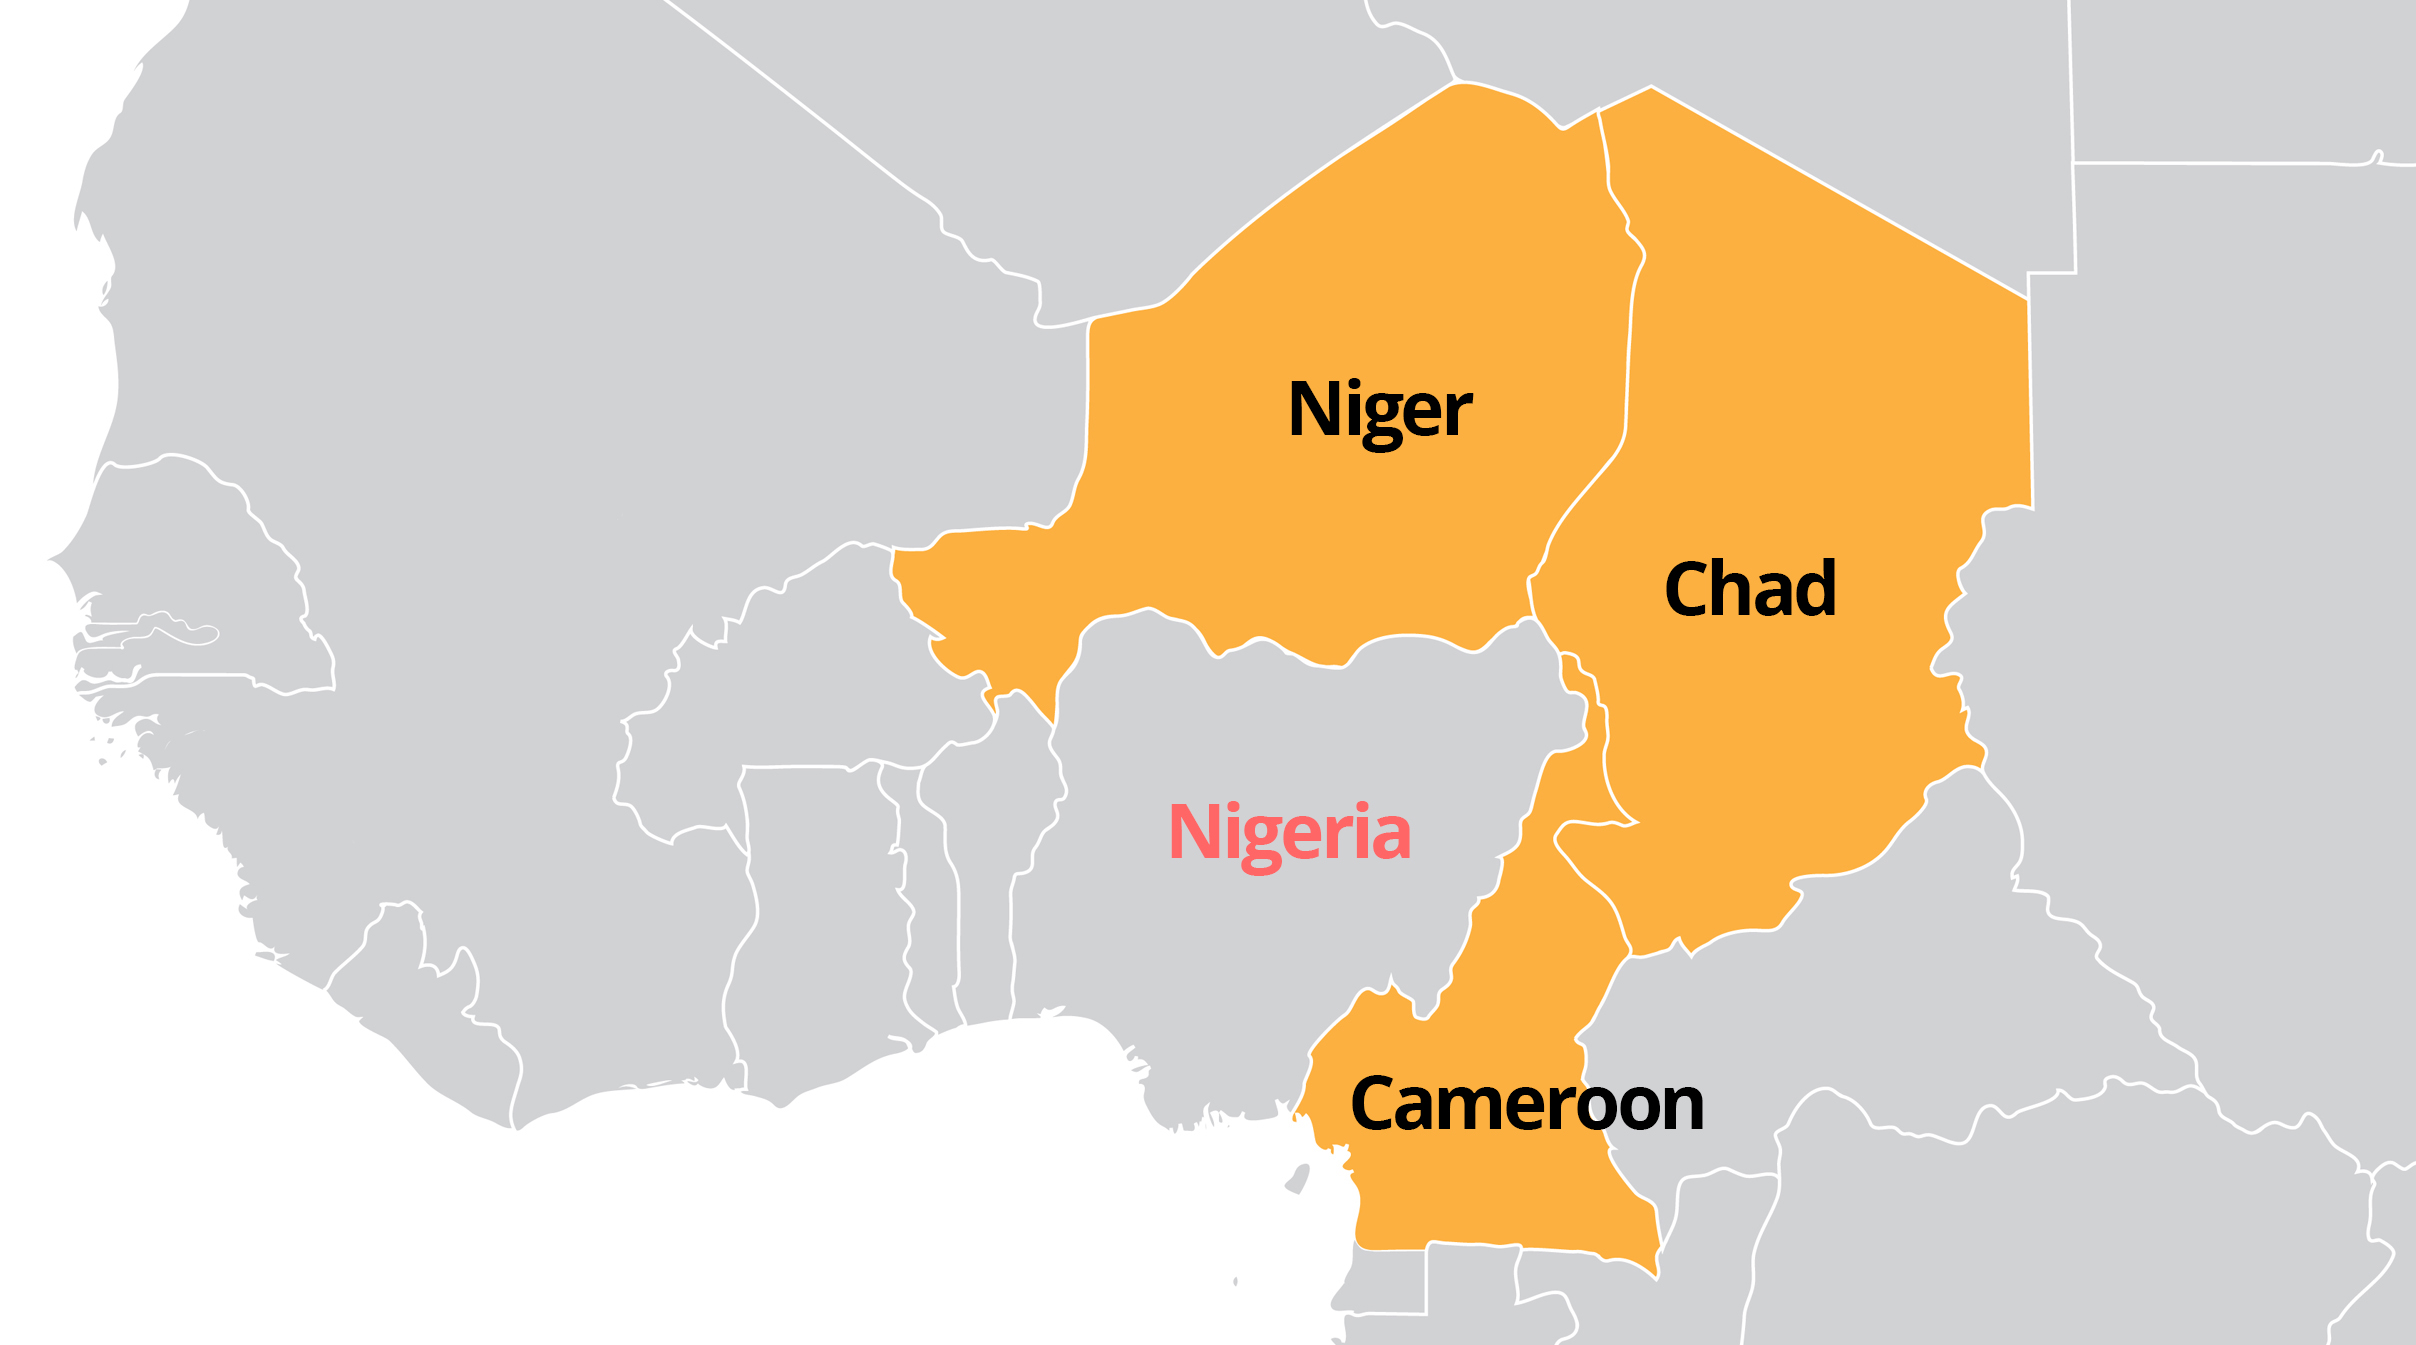 ShelterBox USA - World Map: Lake Chad Basin